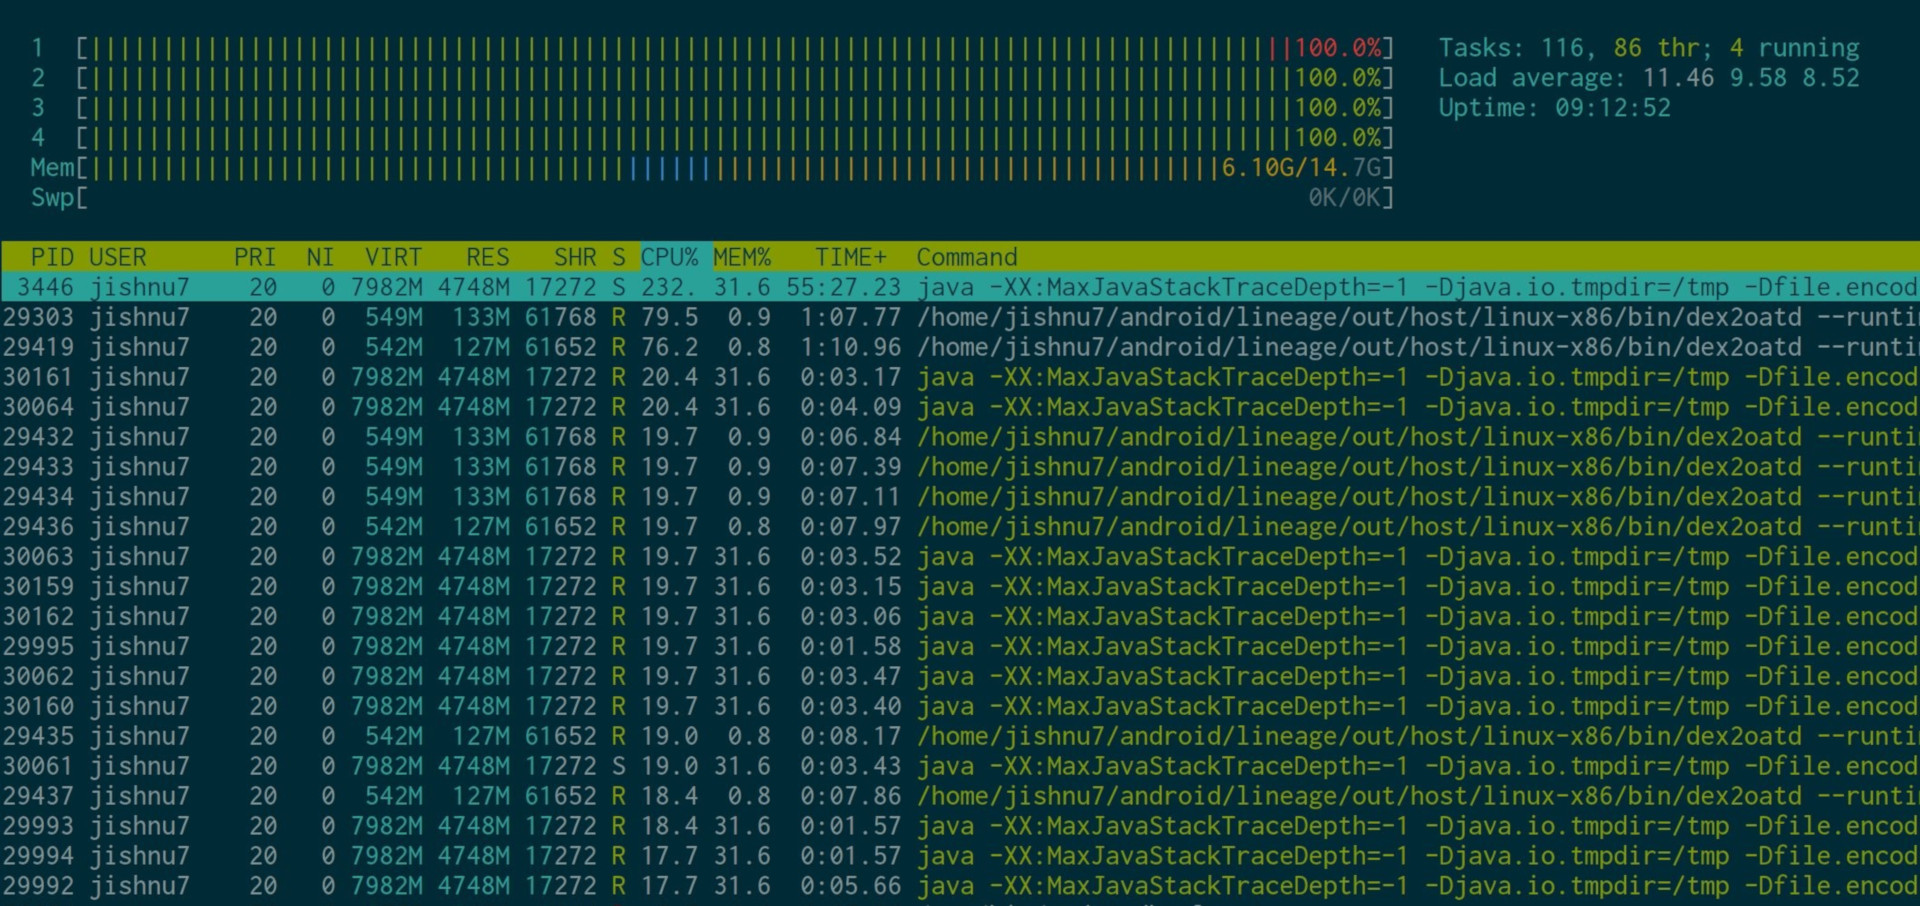 Building LineageOS 15 1 from source